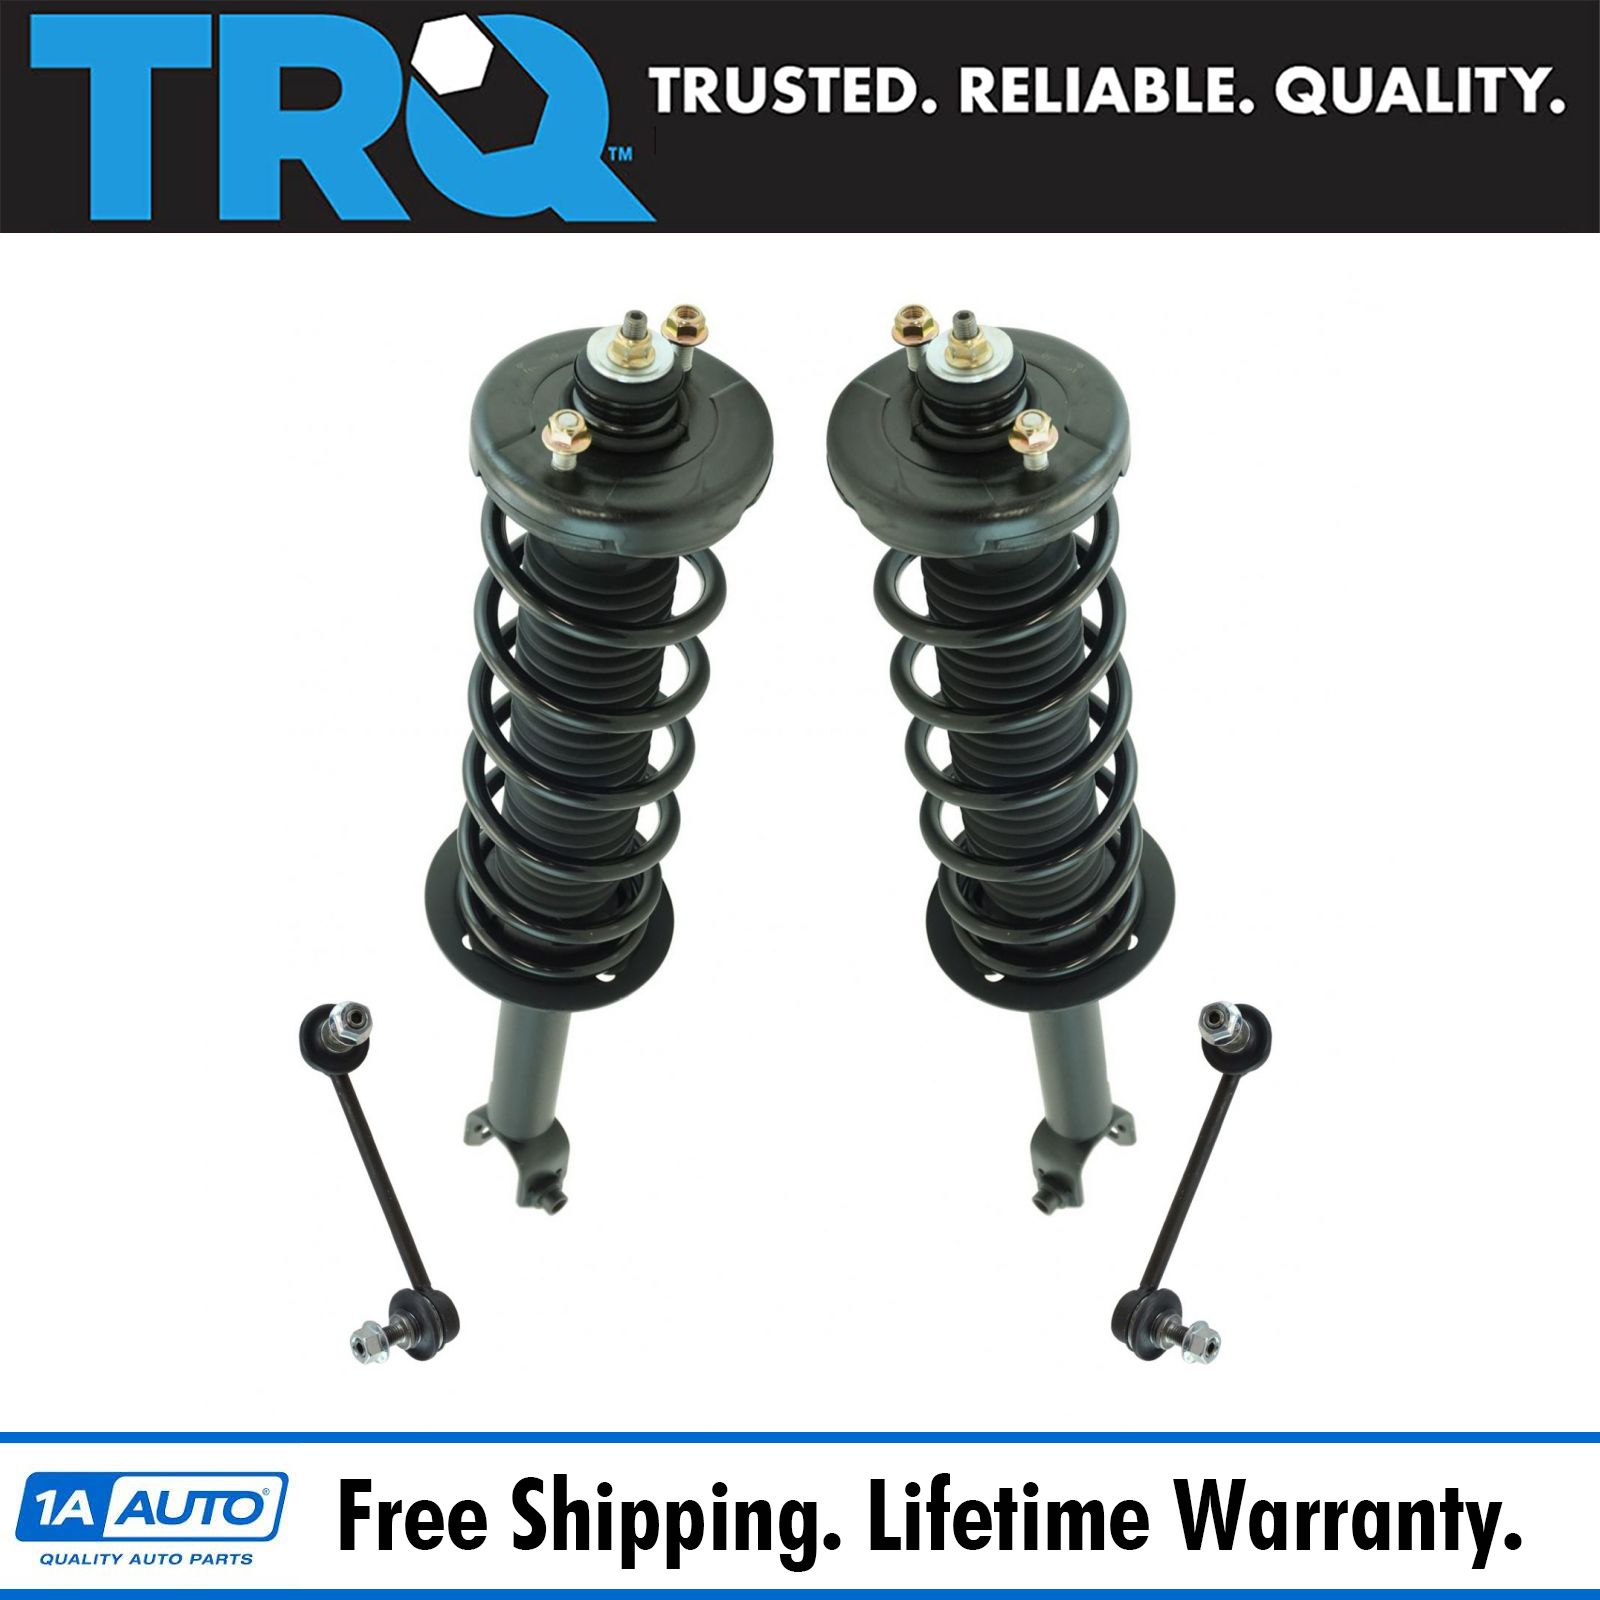 Rear Suspension Kit Strut & Spring Assemblies W/ End Links